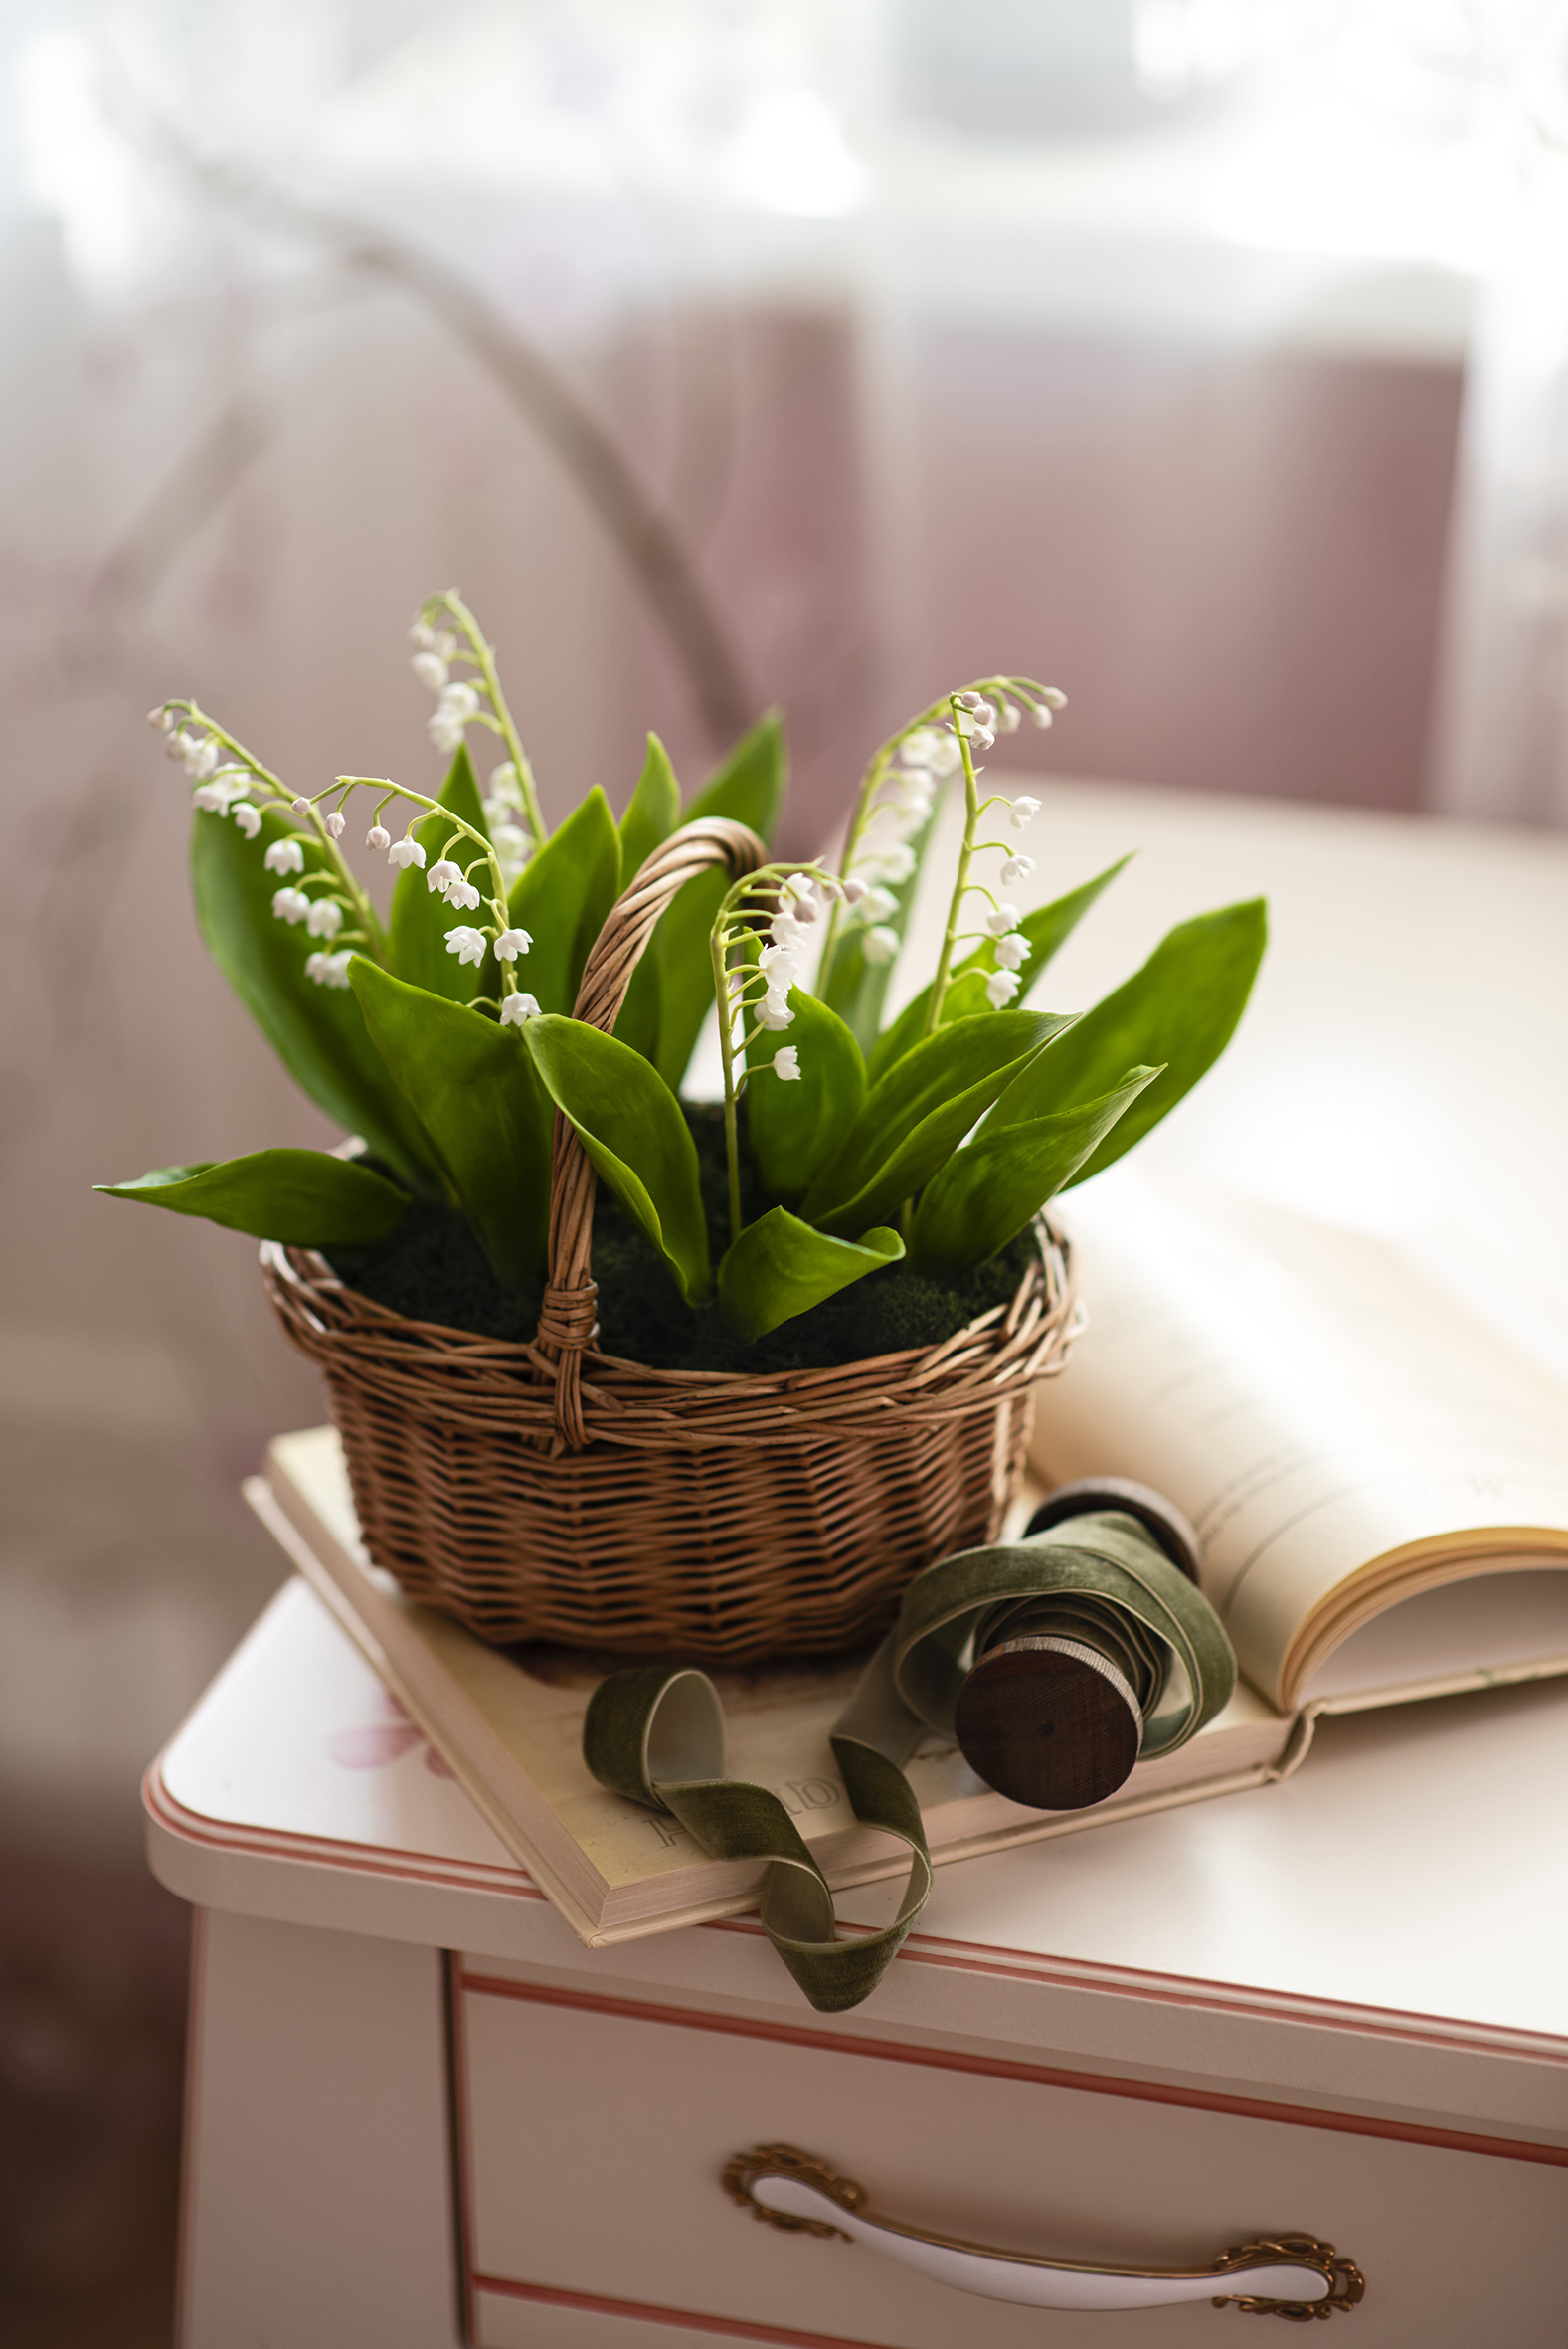 Picture flower Wicker basket Lilies of the valley books  for Mobile phone Flowers Book